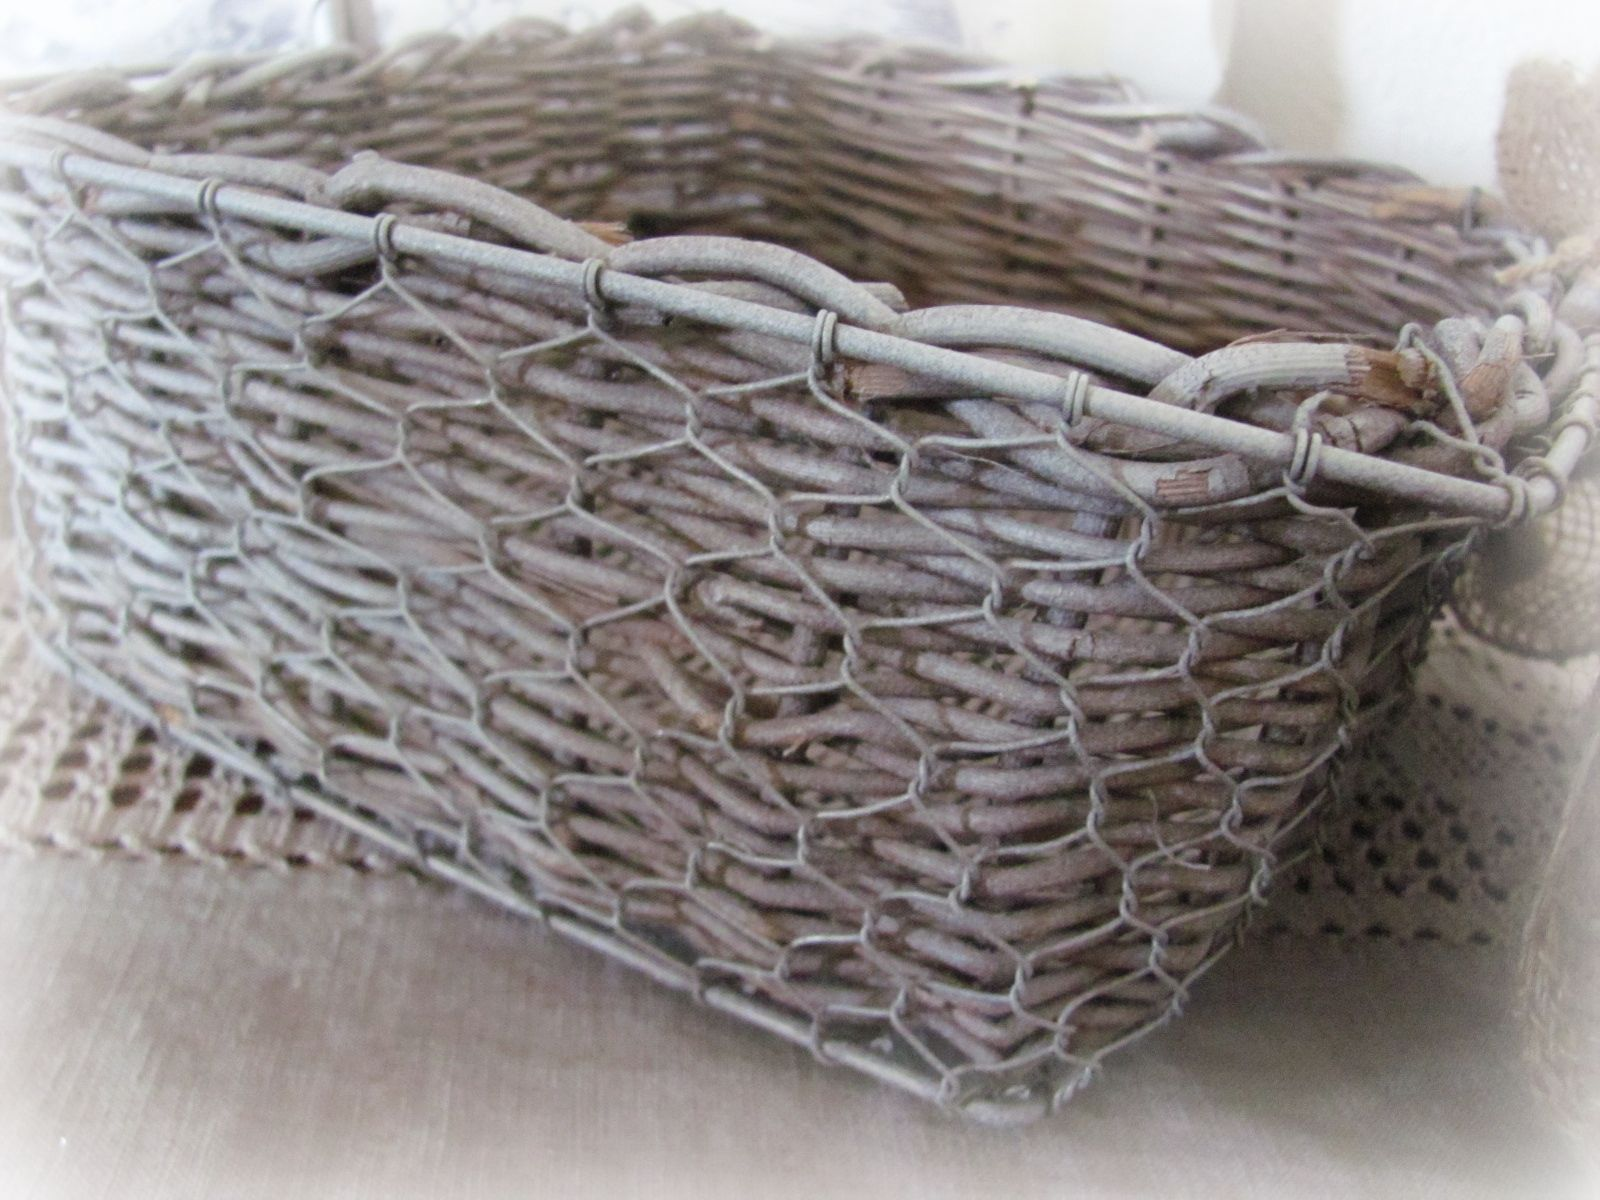 My Shabby Chateau: White Washed French Country Basket